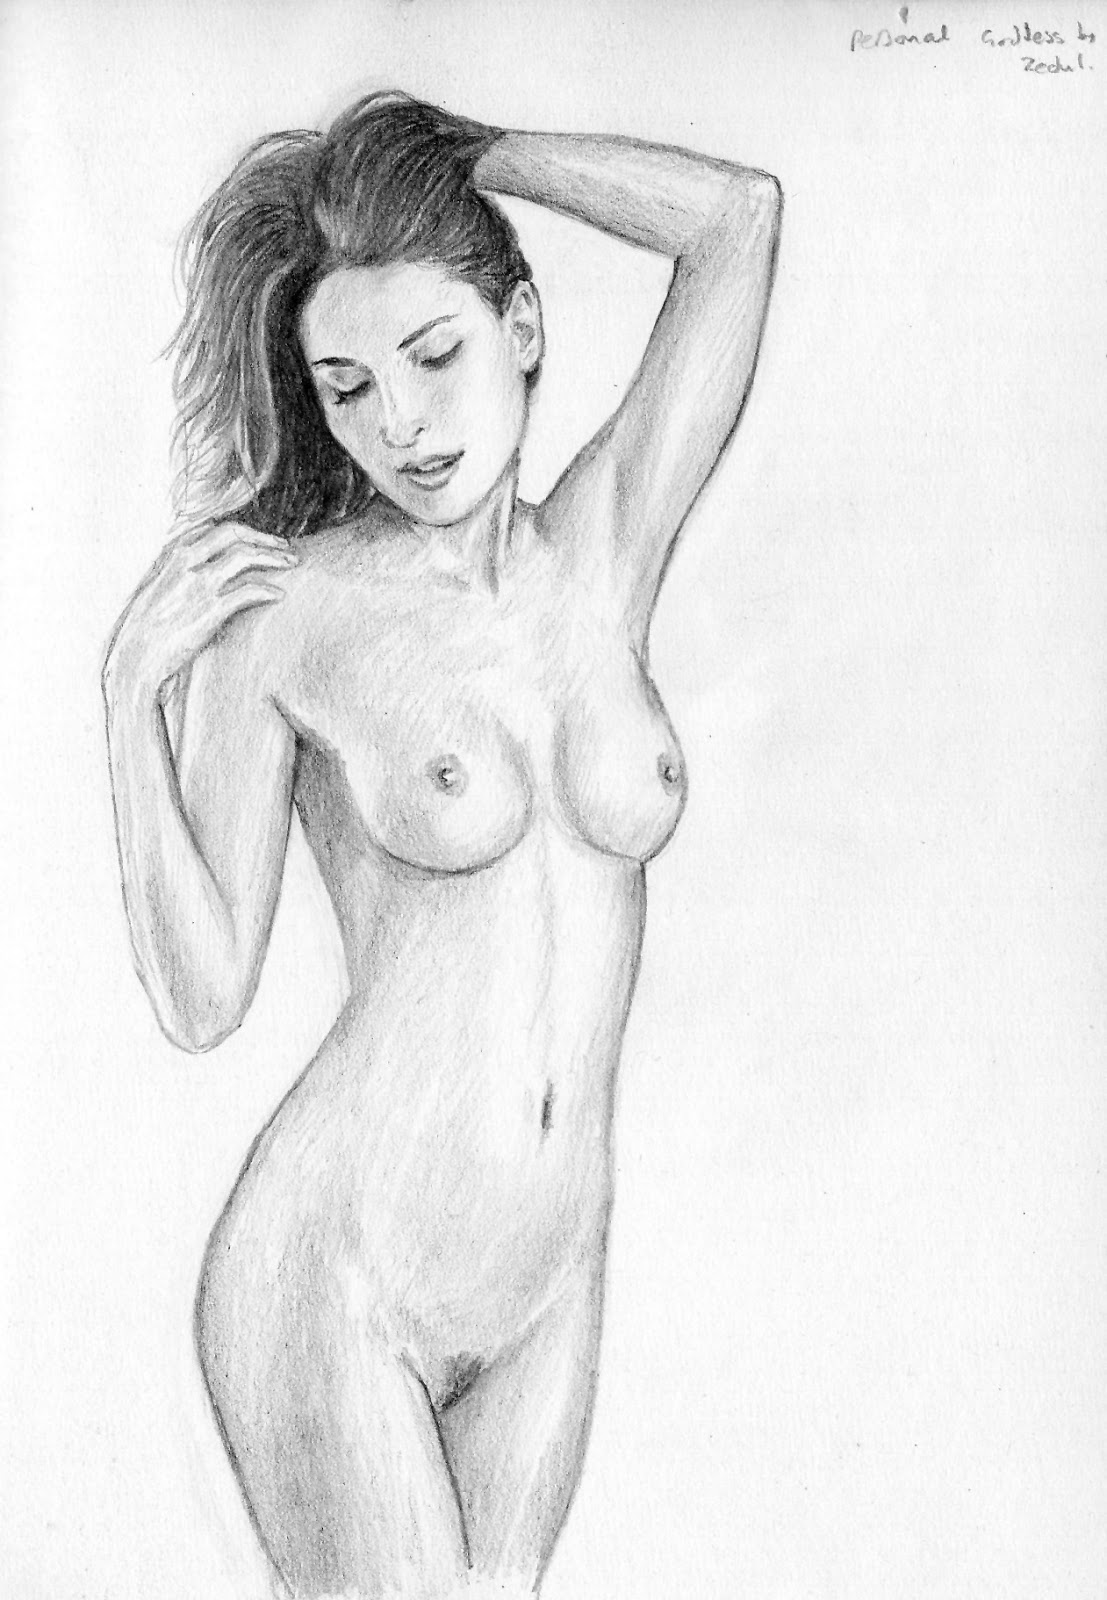 Xxx girls pencil sketch drawing exploited actresses